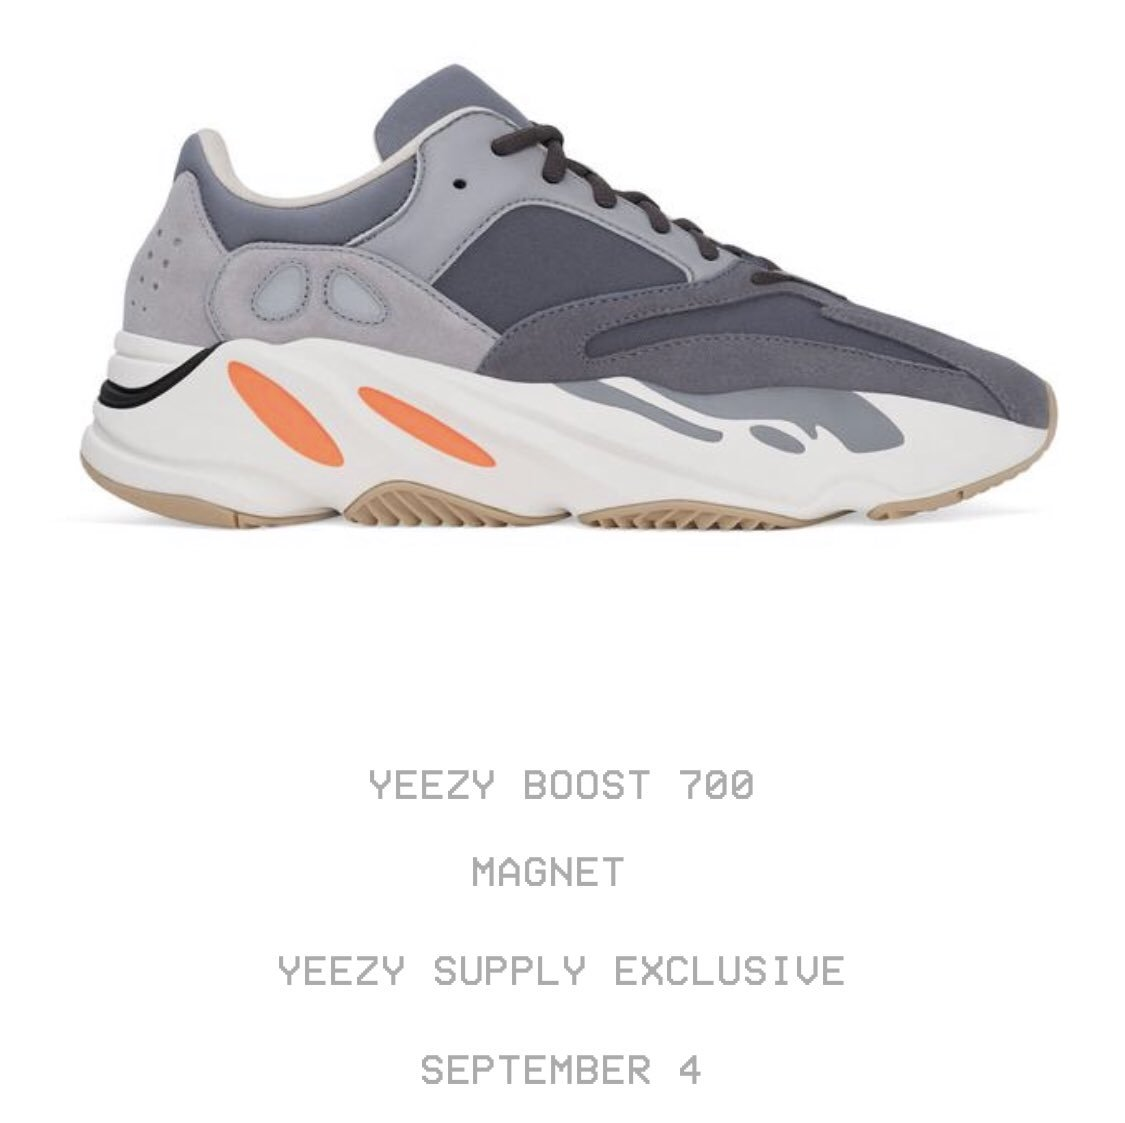 Yeezy Boost 700 'Magnet' could possibly